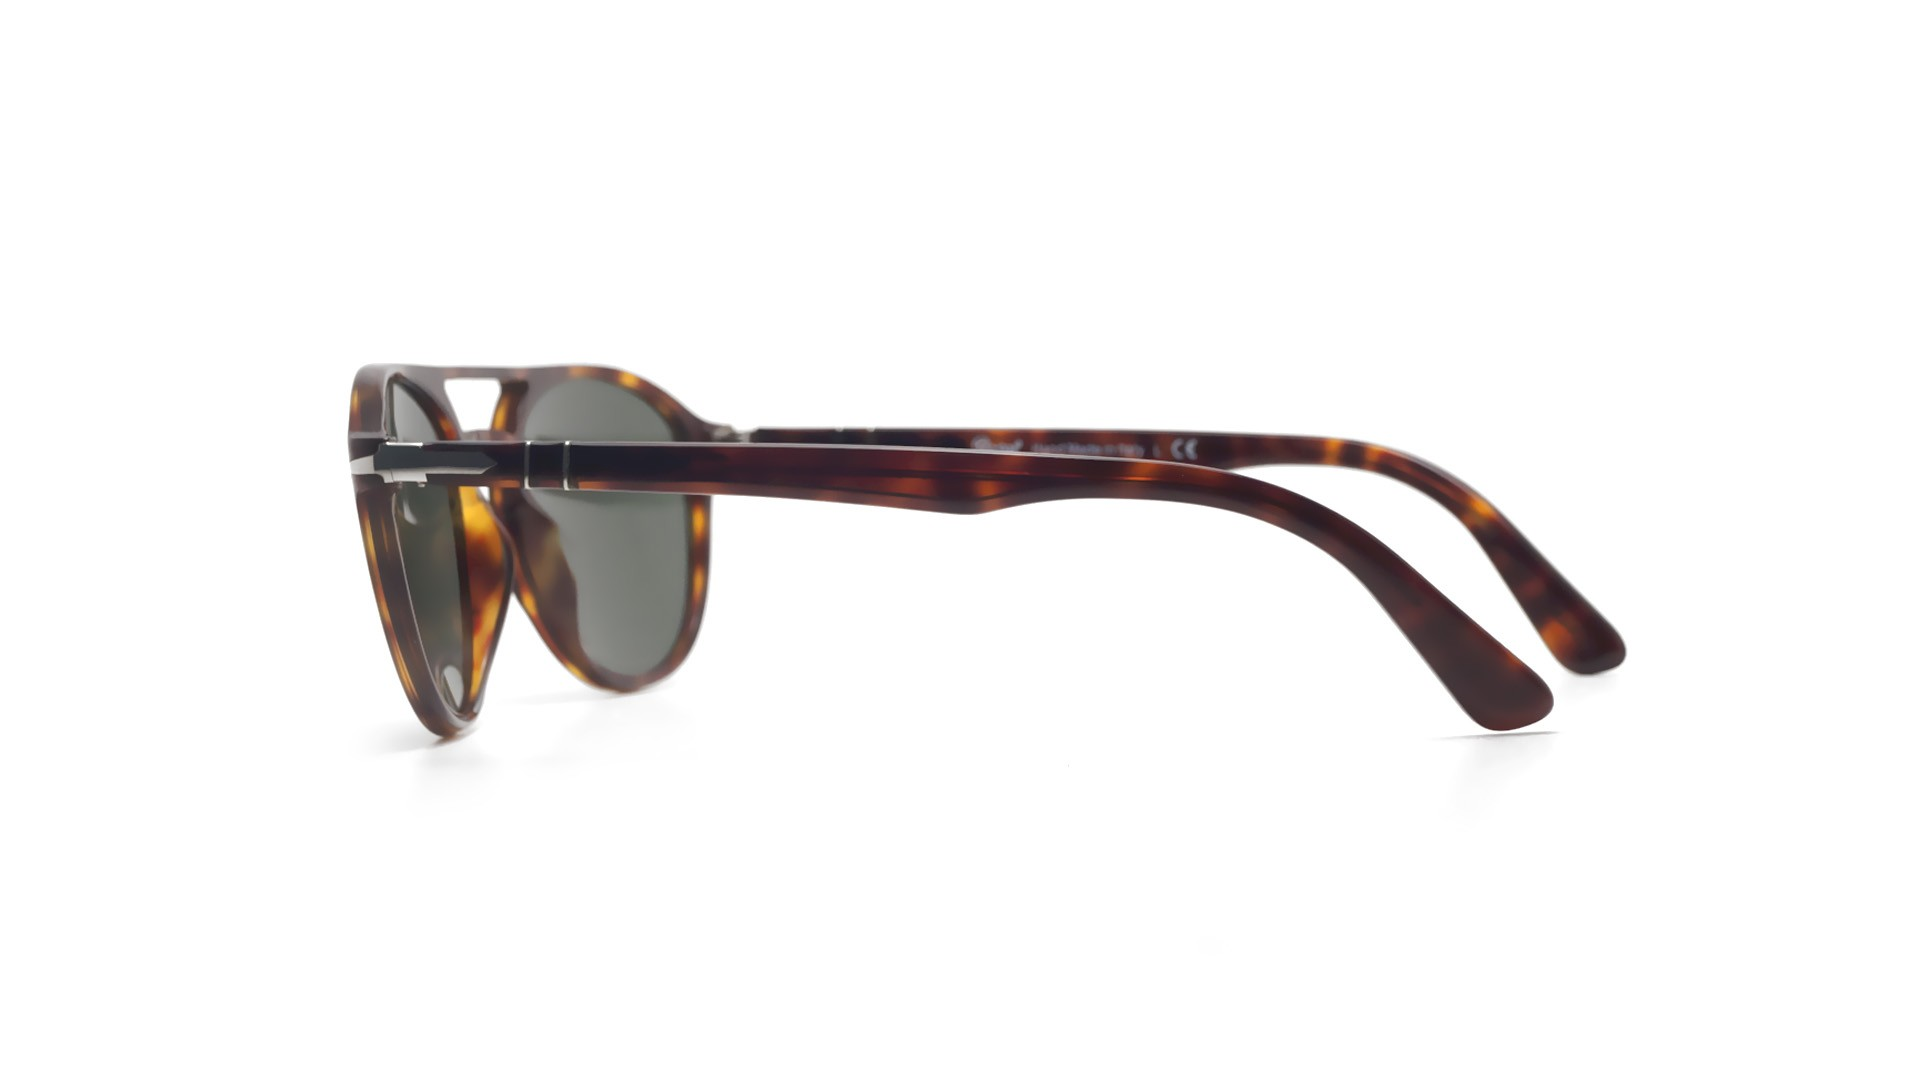 56b270233f Sunglasses Persol PO3170S 9015 31 52-20 Tortoise Medium